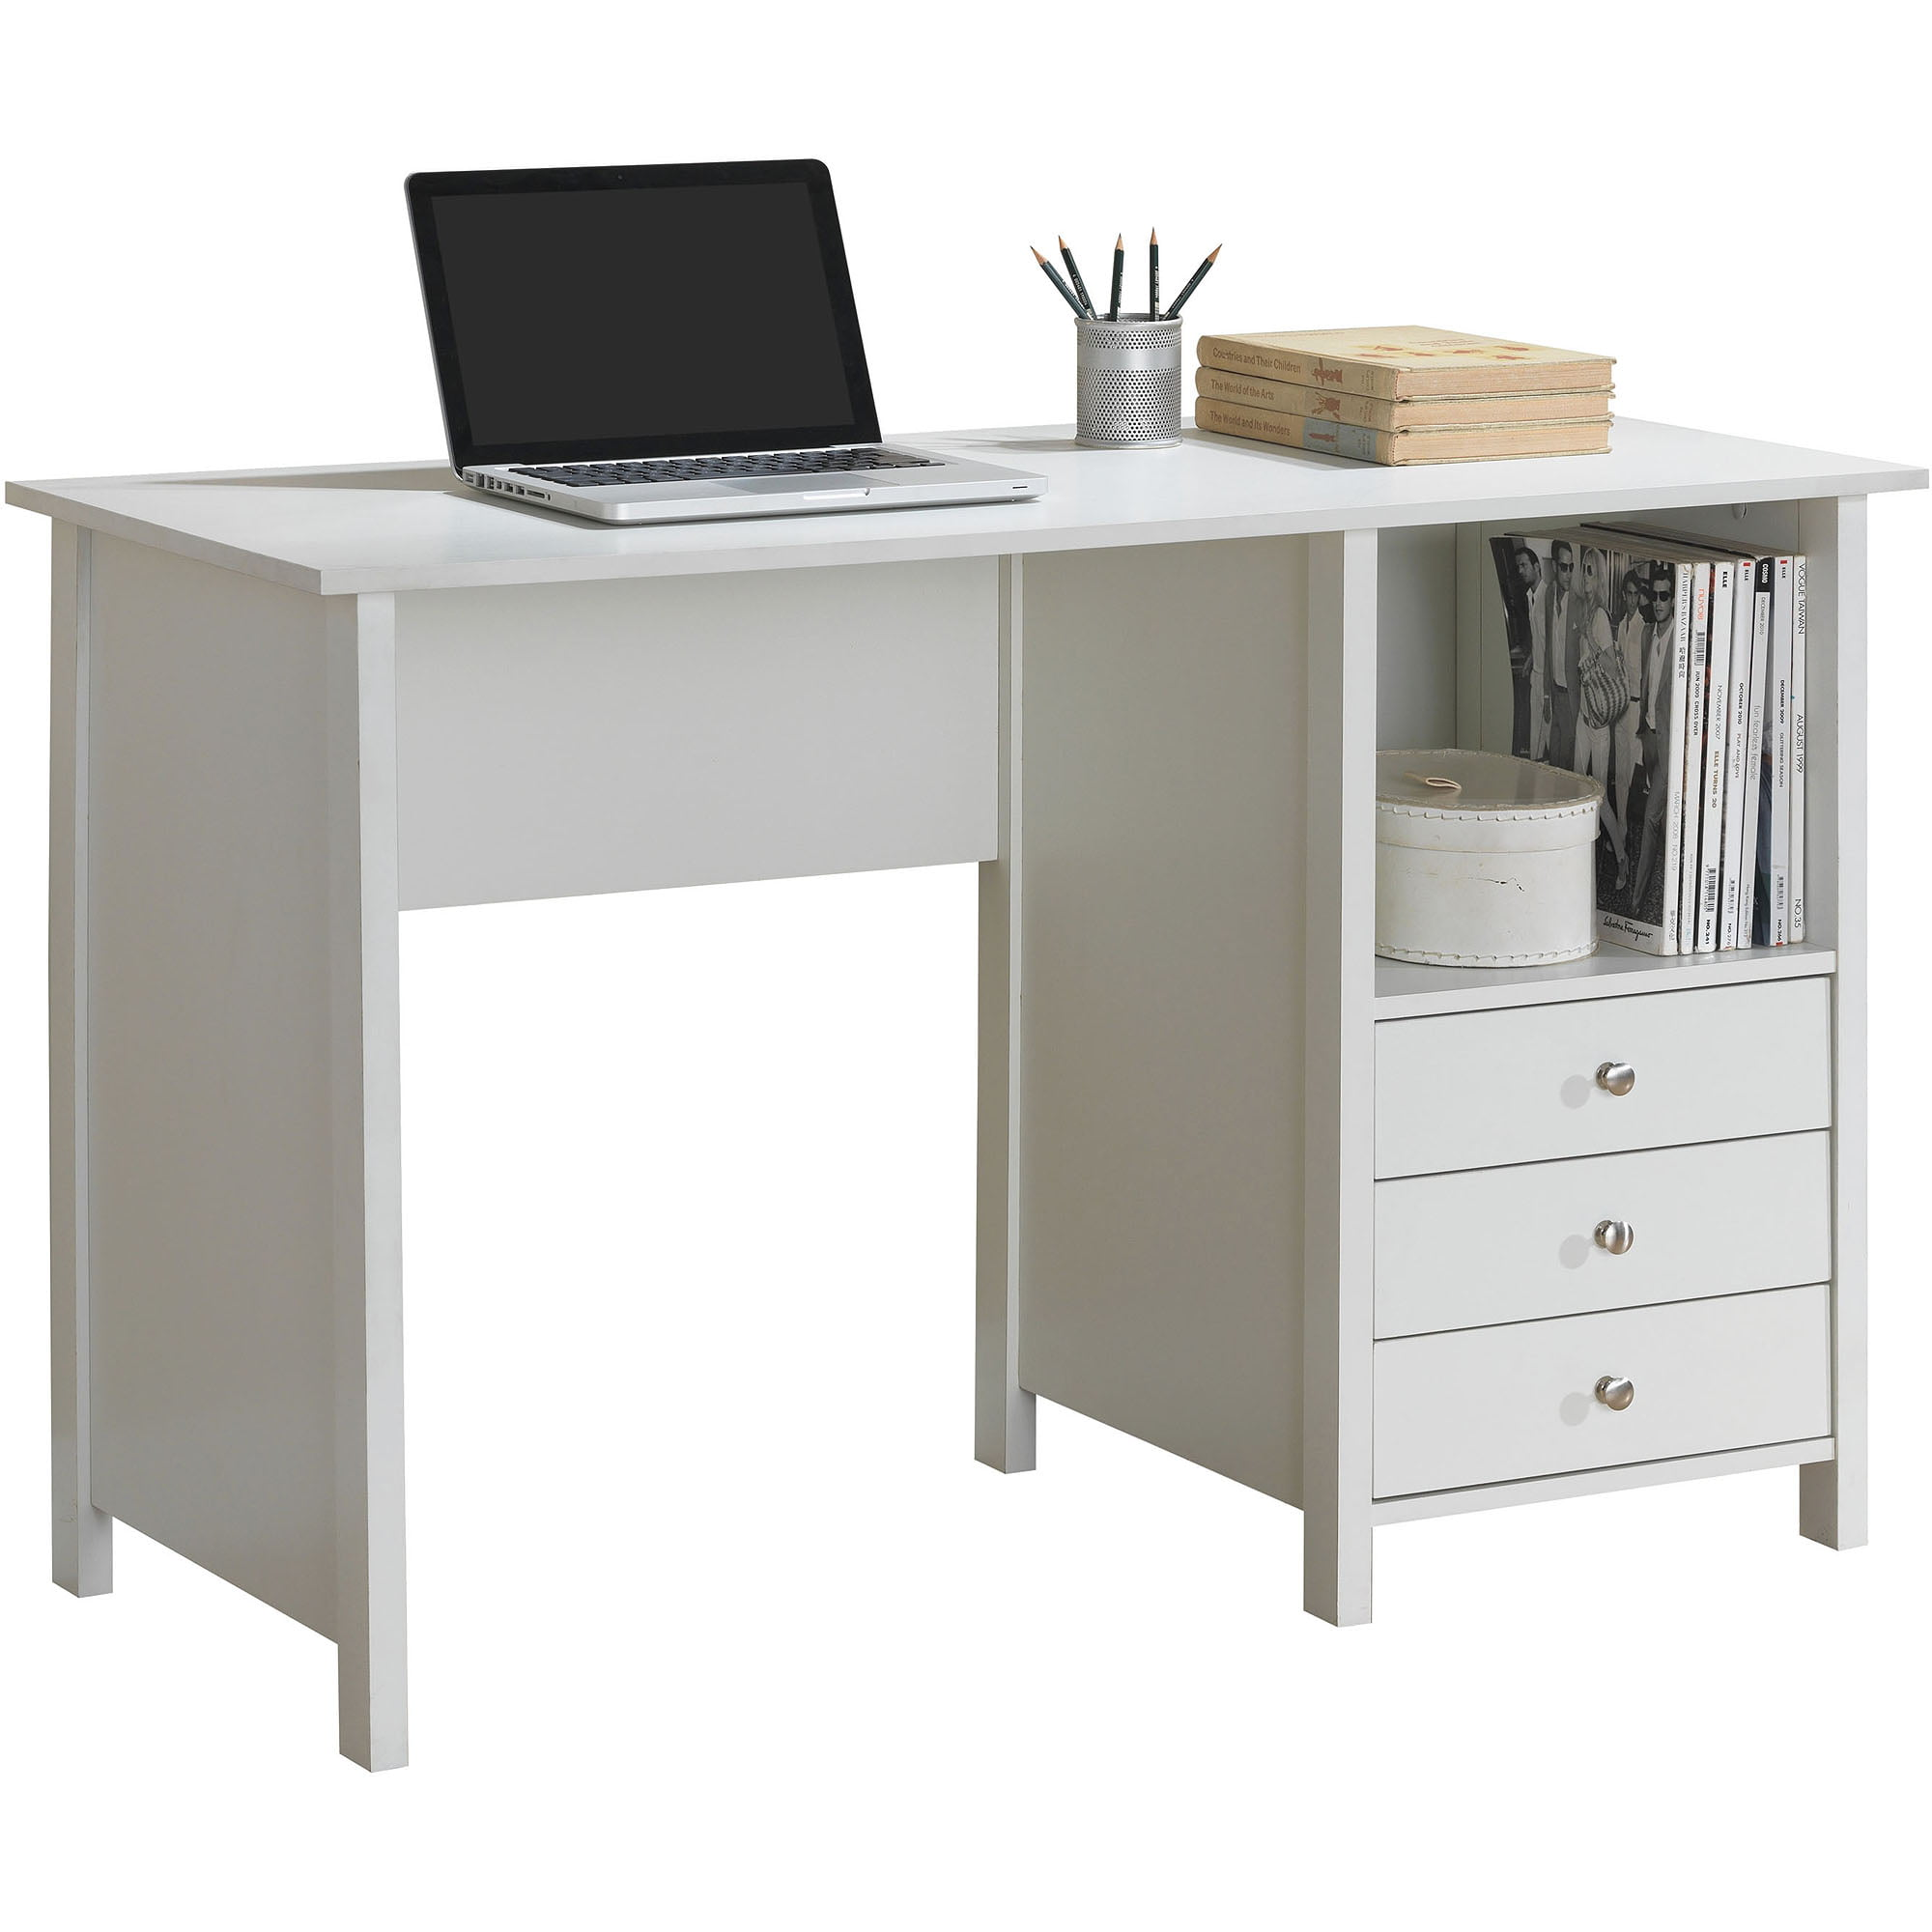 Techni Mobili Contempo Desk White Walmart Com